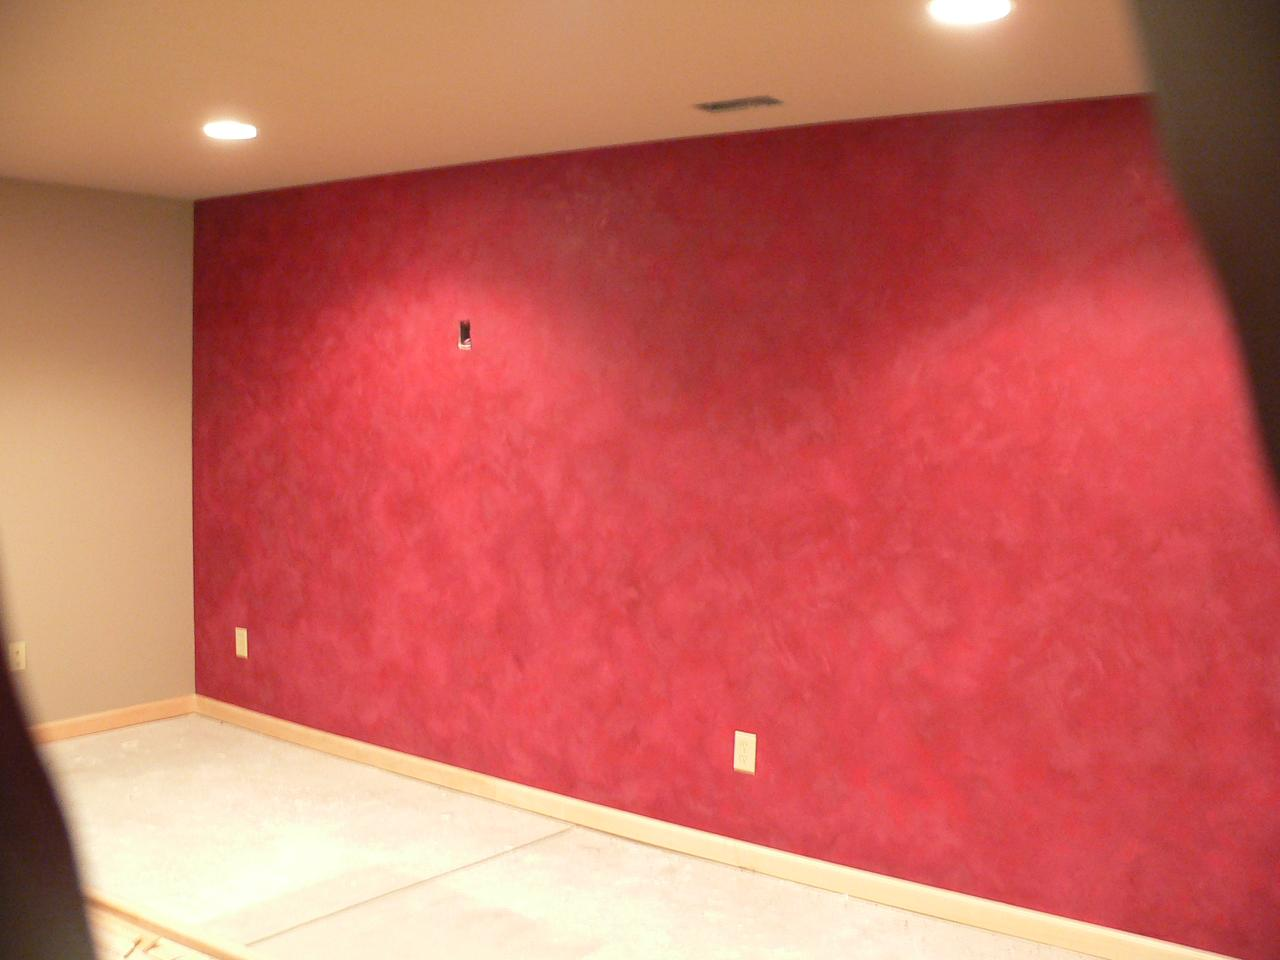 Faux Finishes For Room Amp Wall Painting Port Aransas Tx